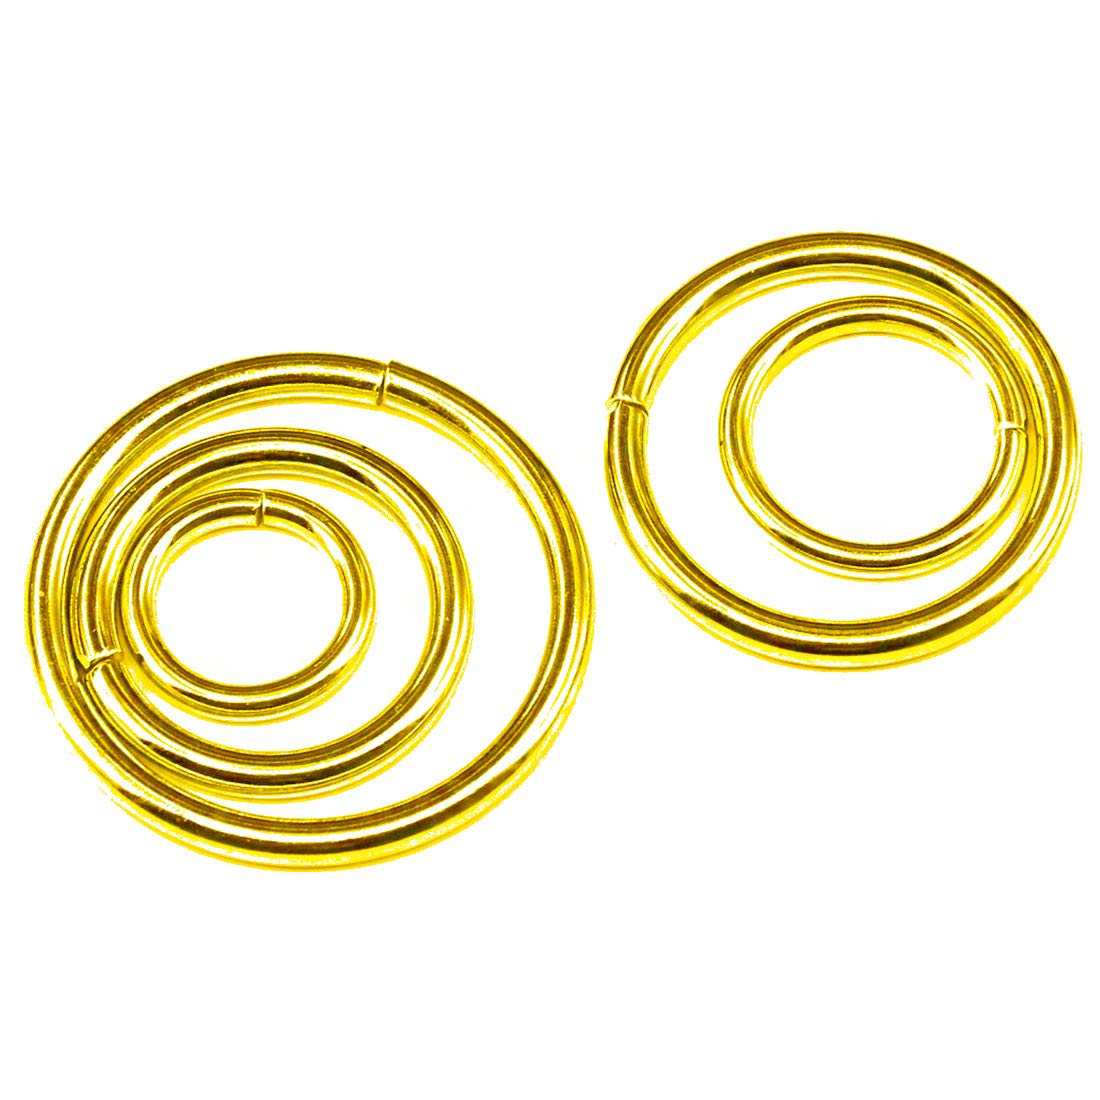 1//2 Inch 5//8 Inch 5//4 Inch Swpeet 100 Pcs Bronze Assorted Multi-Purpose Metal D Ring Semi-Circular D Ring for Hardware Bags Ring Hand DIY Accessories 1 Inch 3//4 Inch